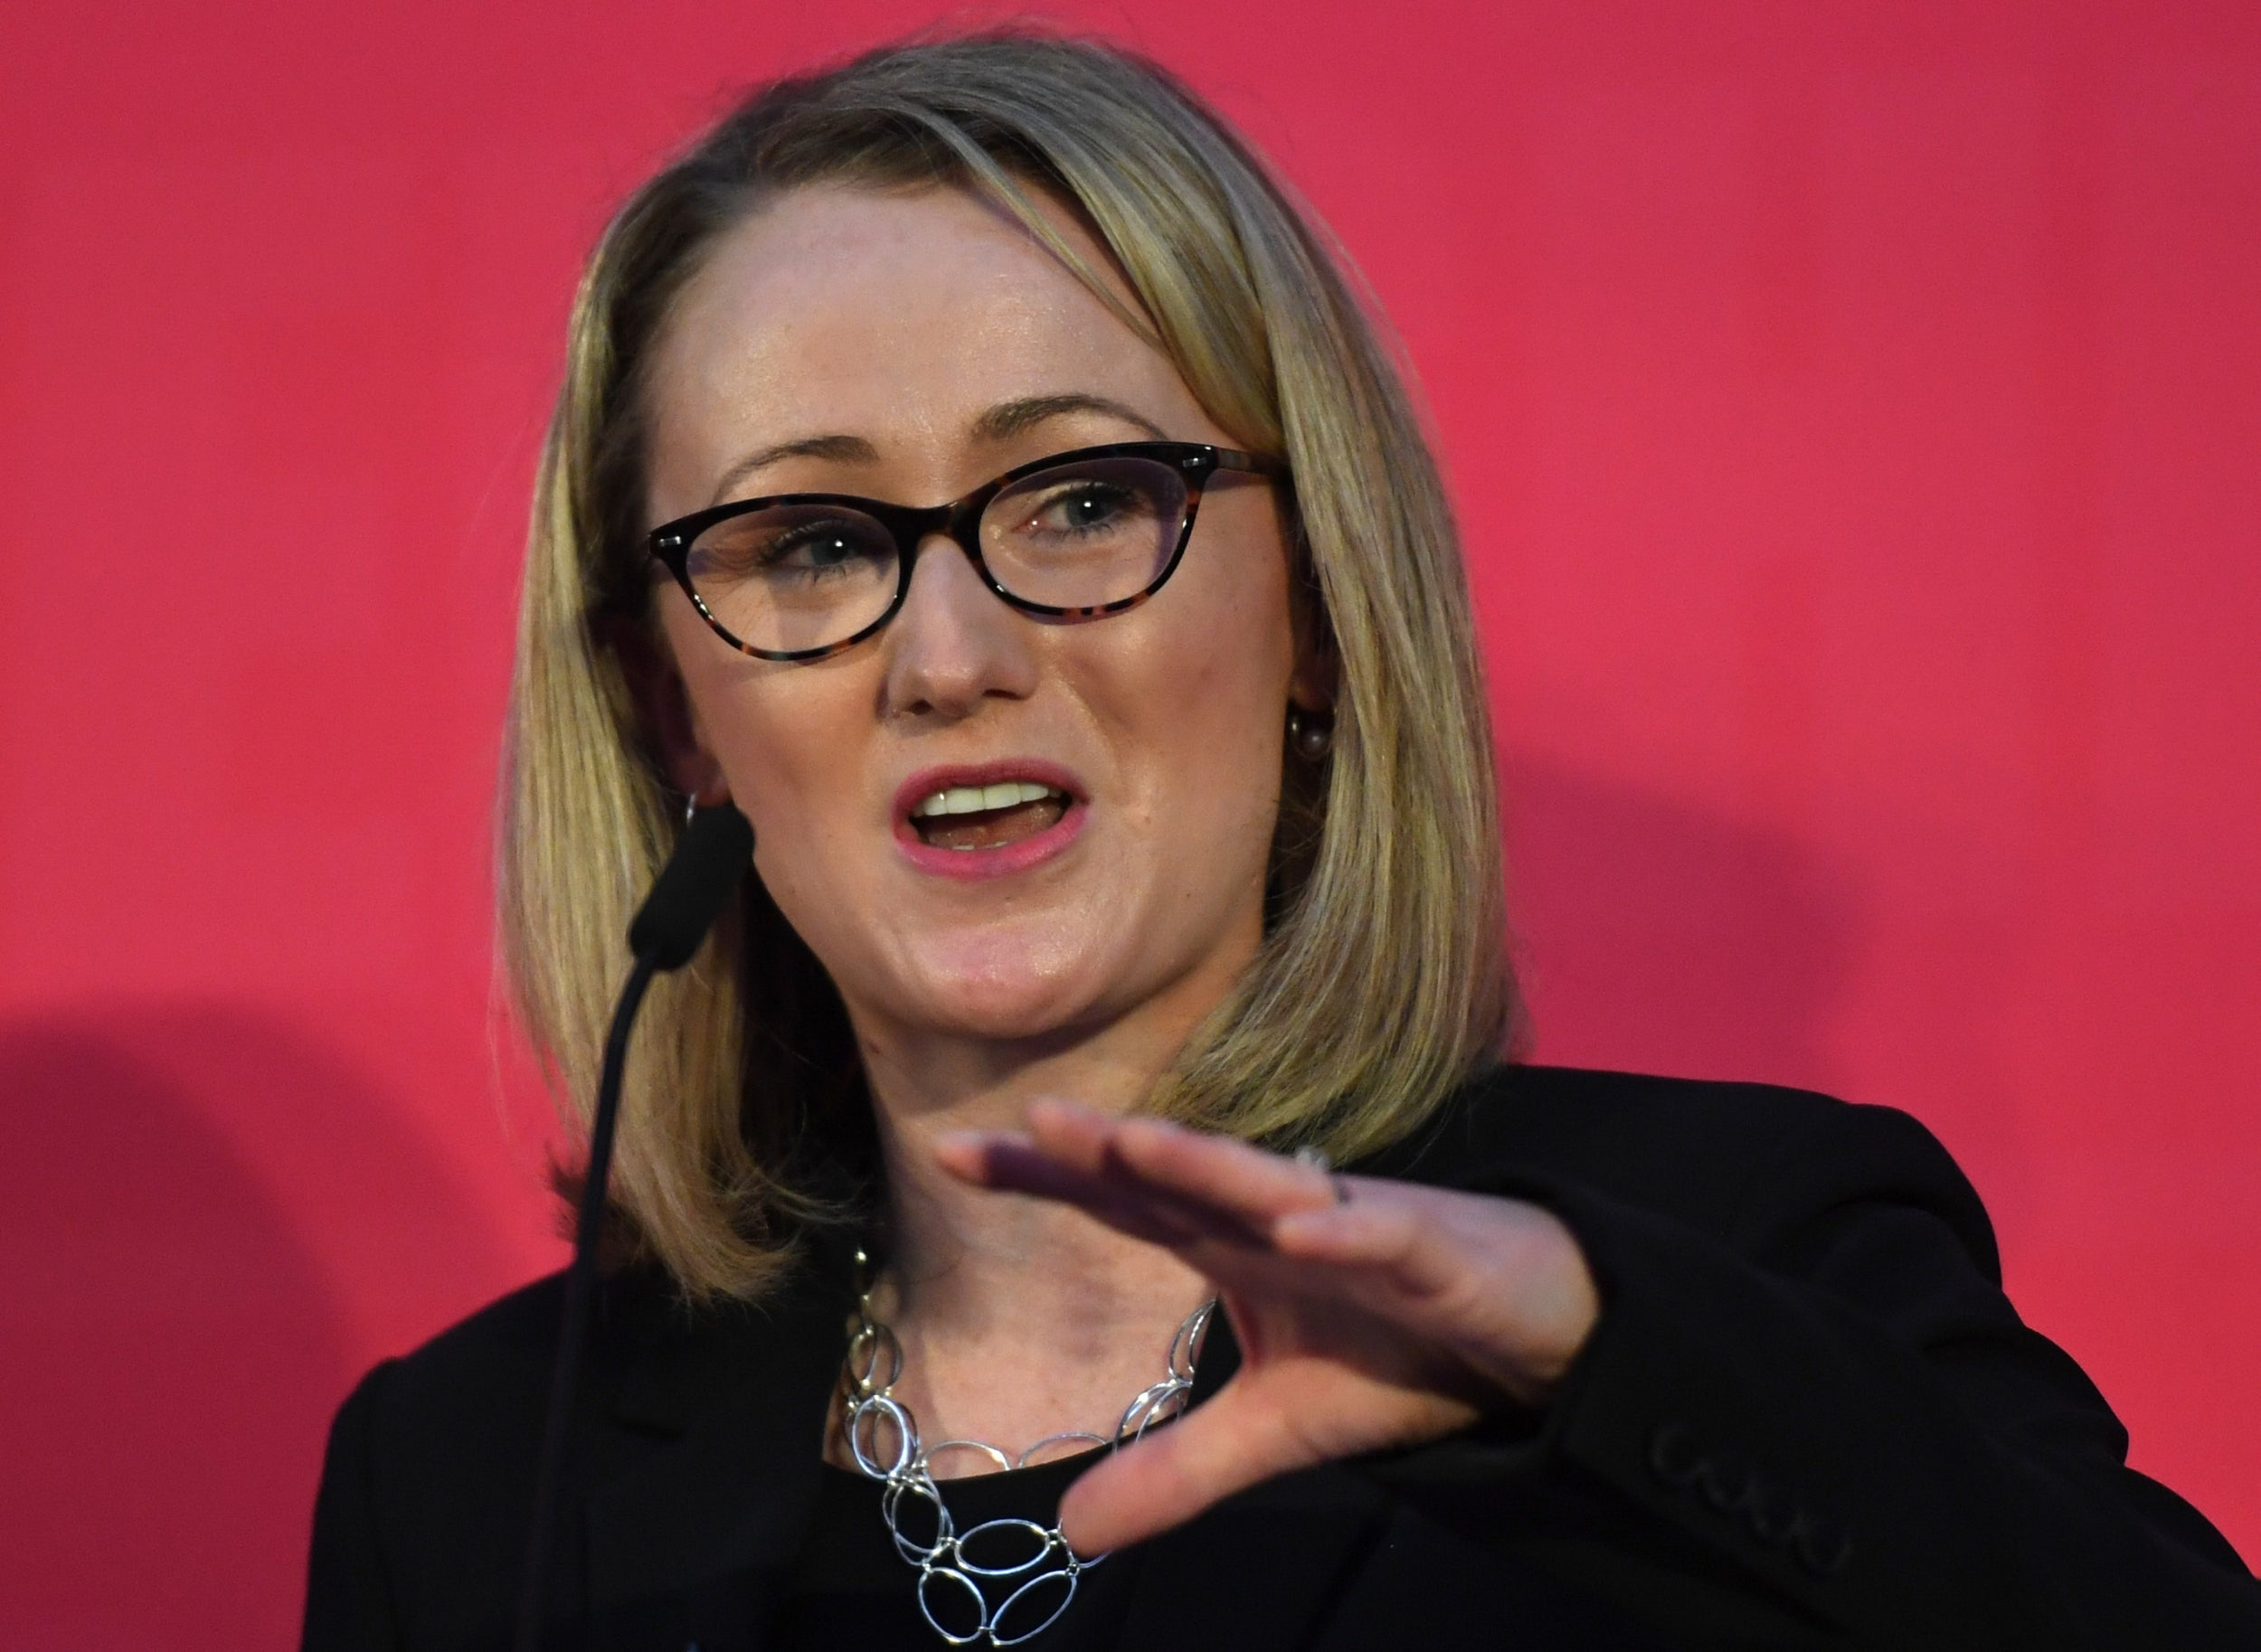 Labour leadership: Rebecca Long-Bailey calls for Heathrow expansion to be ditched to combat climate emergency